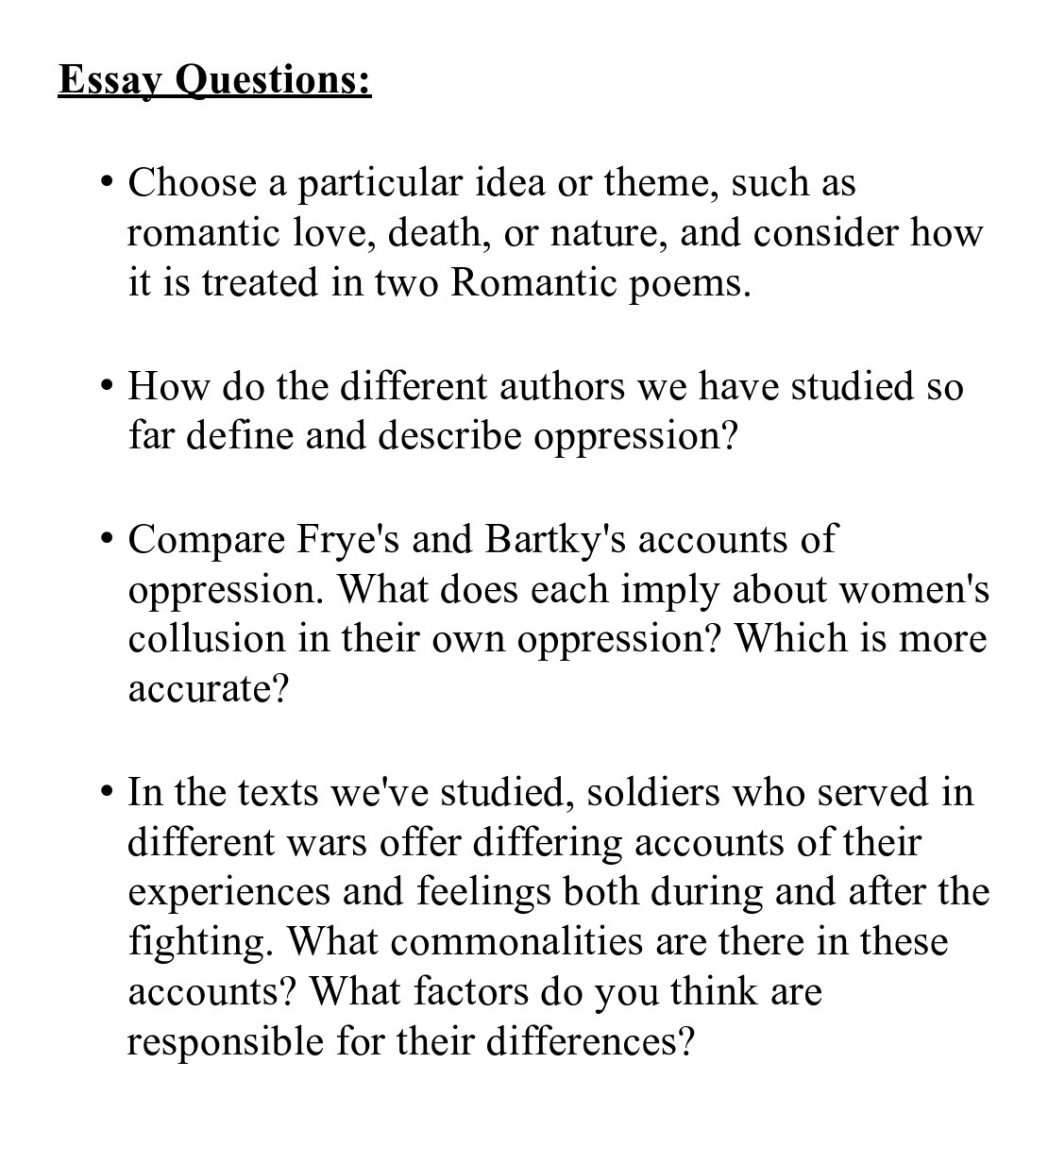 011 Virginia Tech Essays Sample Of Evaluation Essay Questions For Ques 1048x1164 Phenomenal Reddit Prompts 2018 Sat Requirements Full